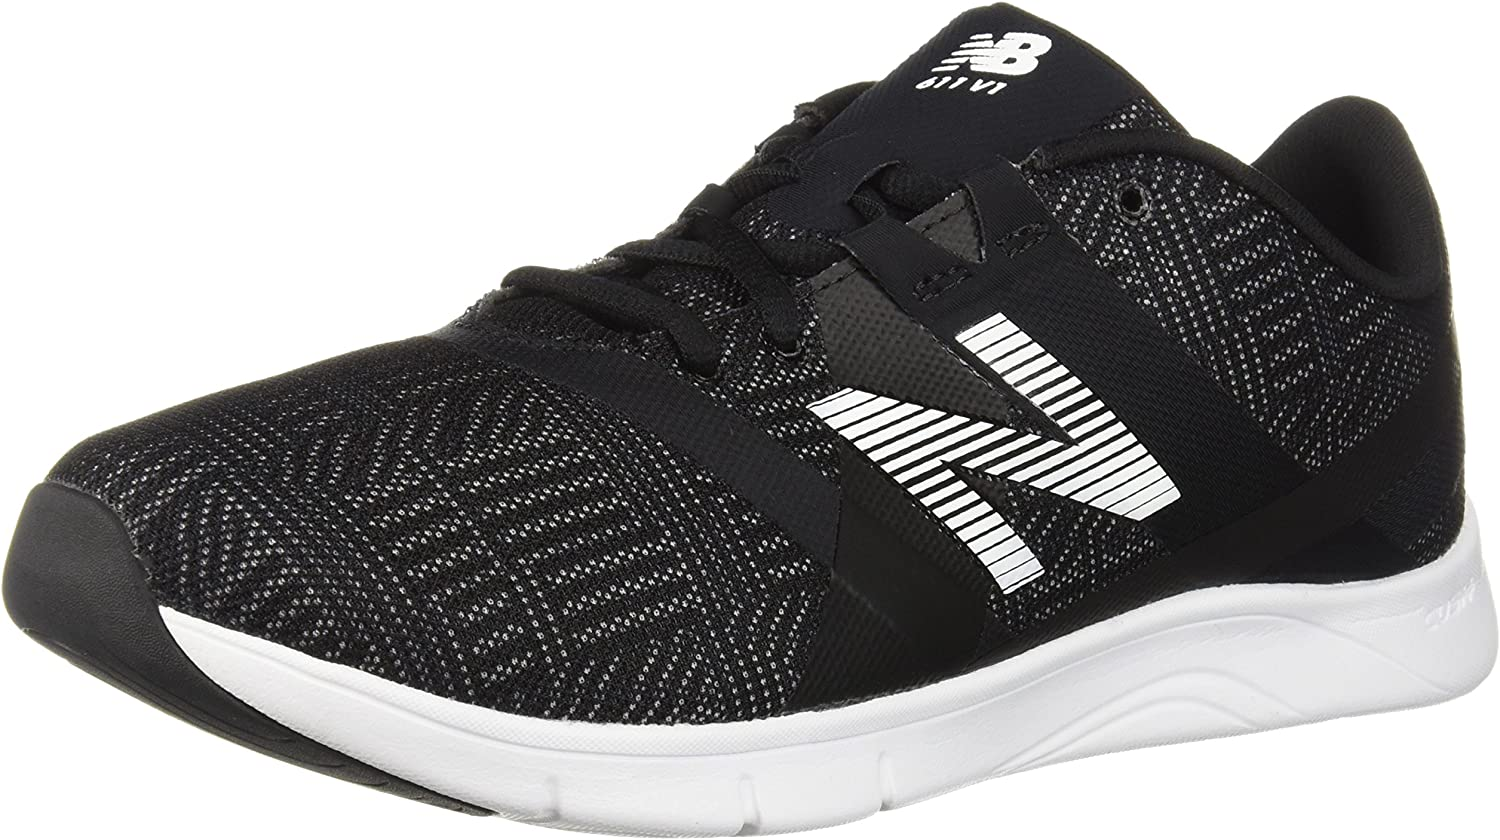 New Balance Women's Cush 611 V1 Cross Trainer